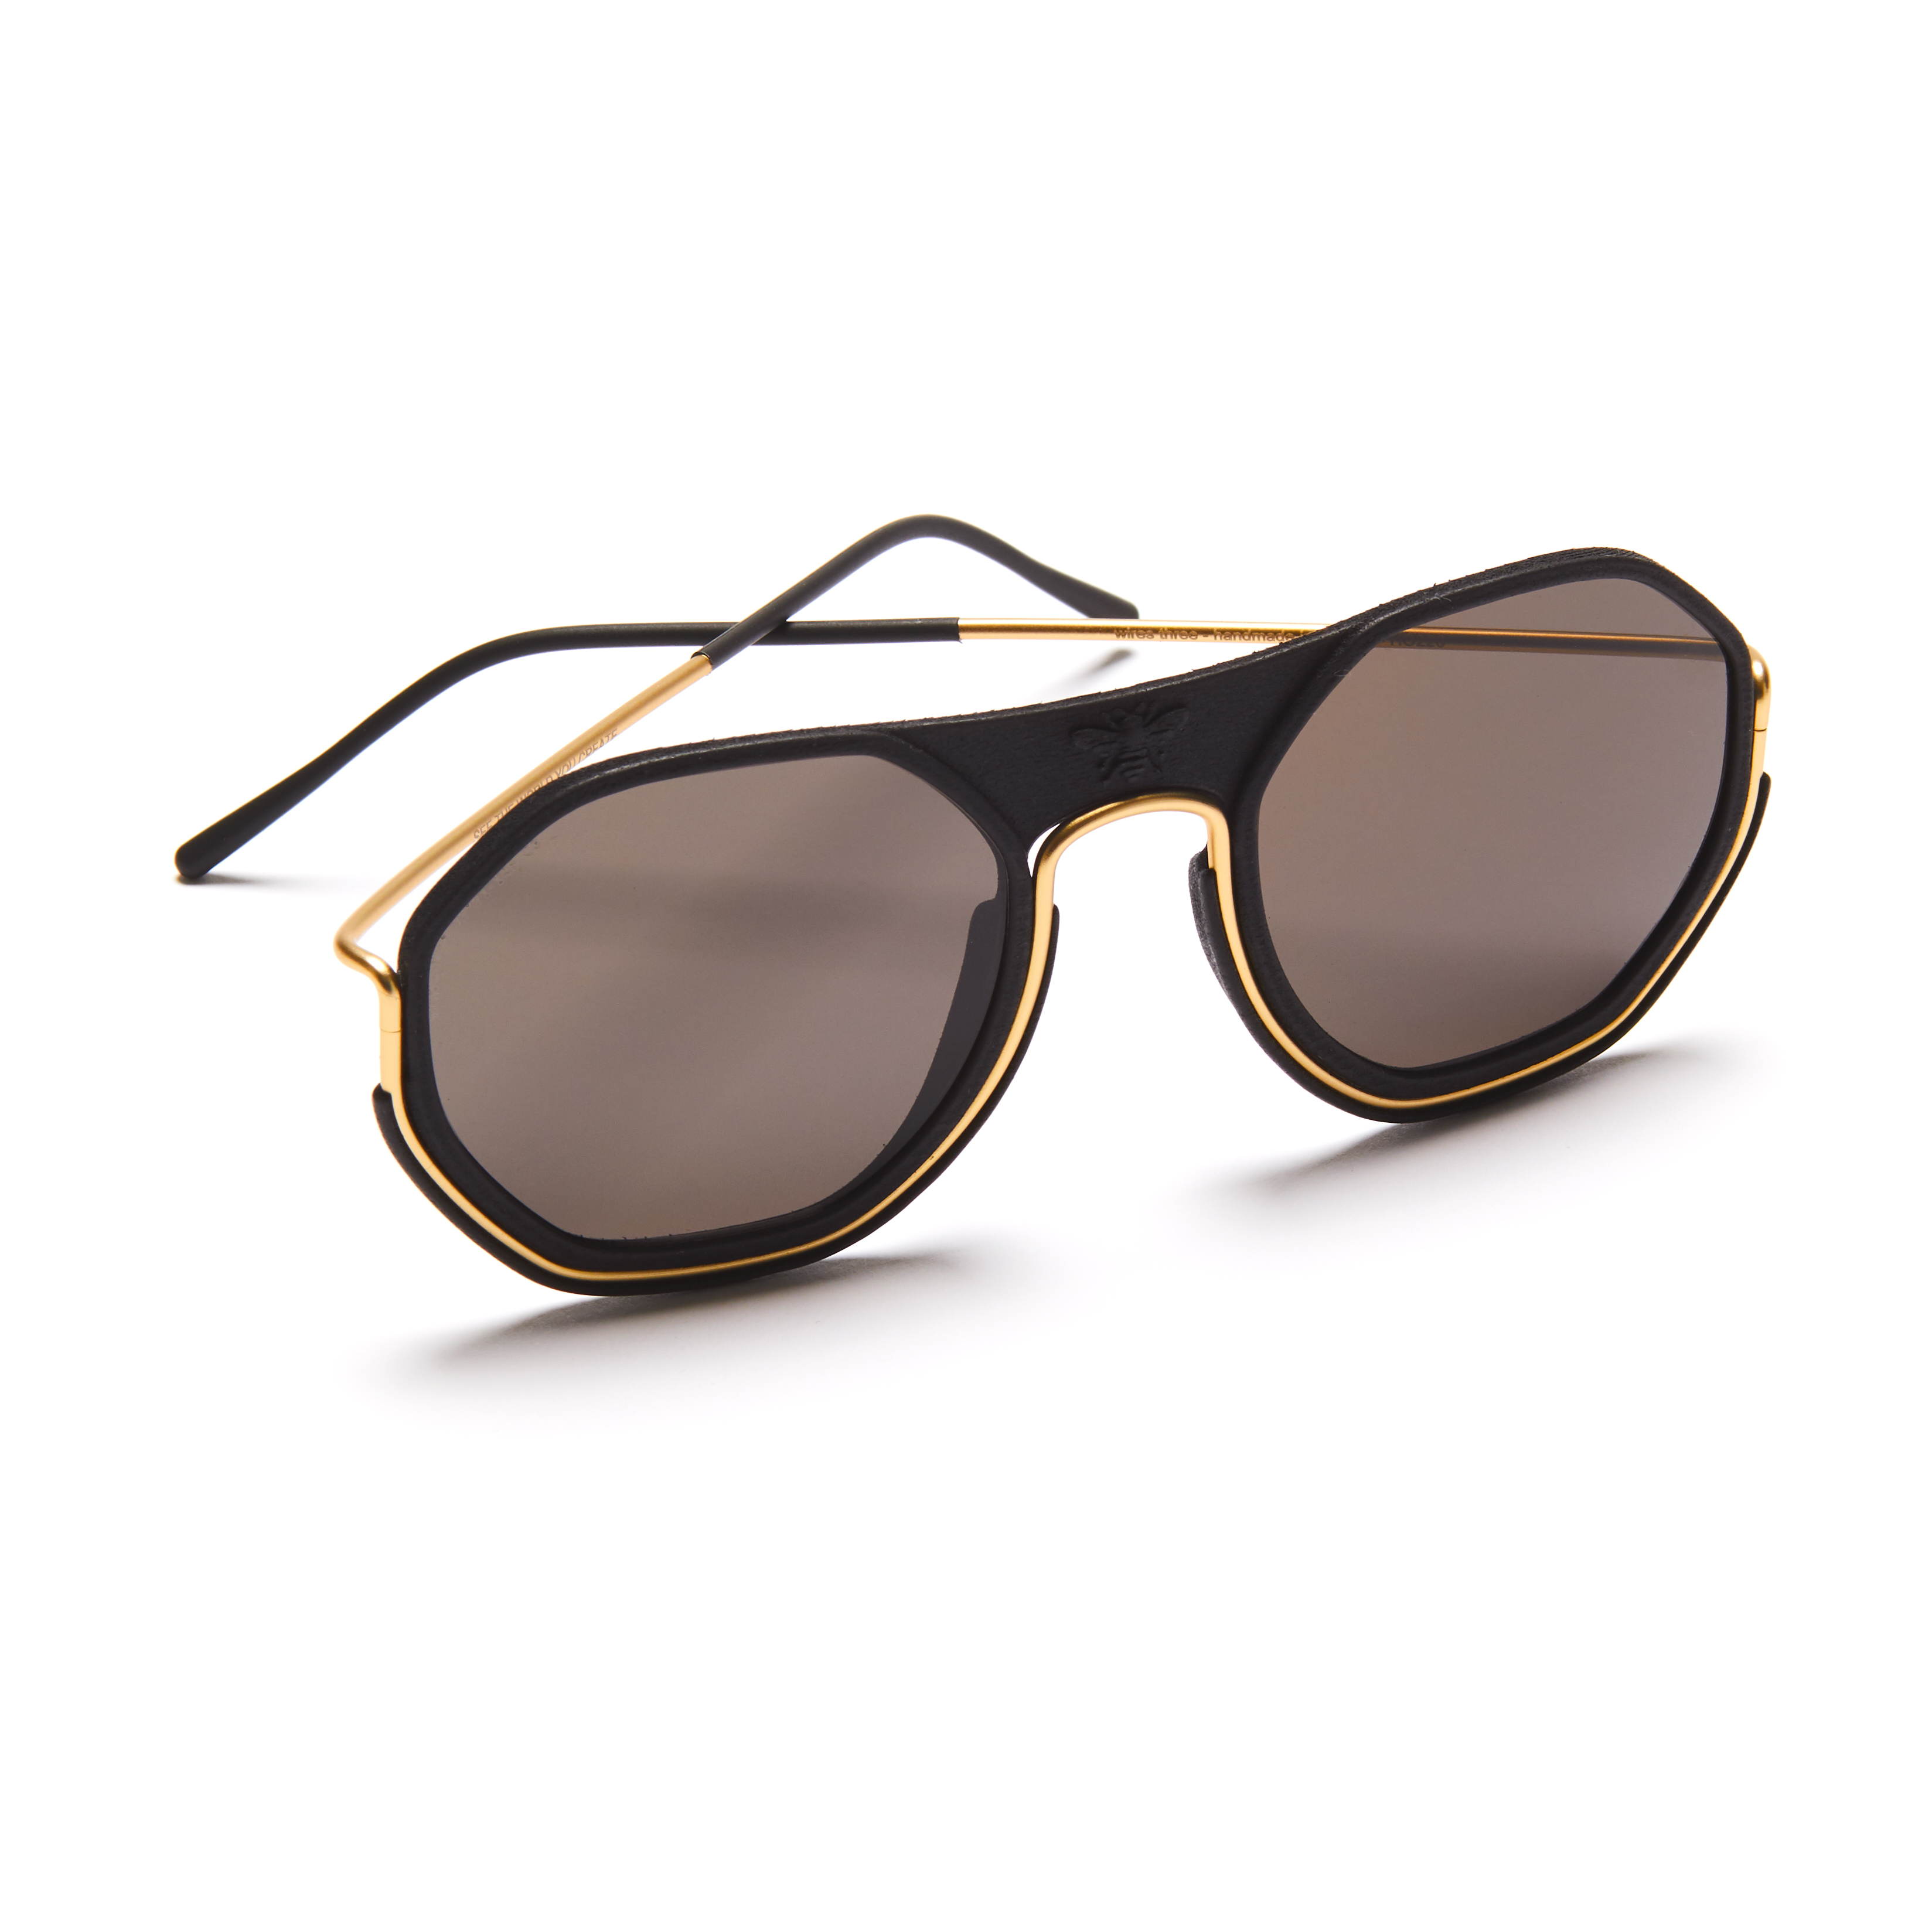 Sting Sunglasses by Wires Glasses on curated-crowd.com